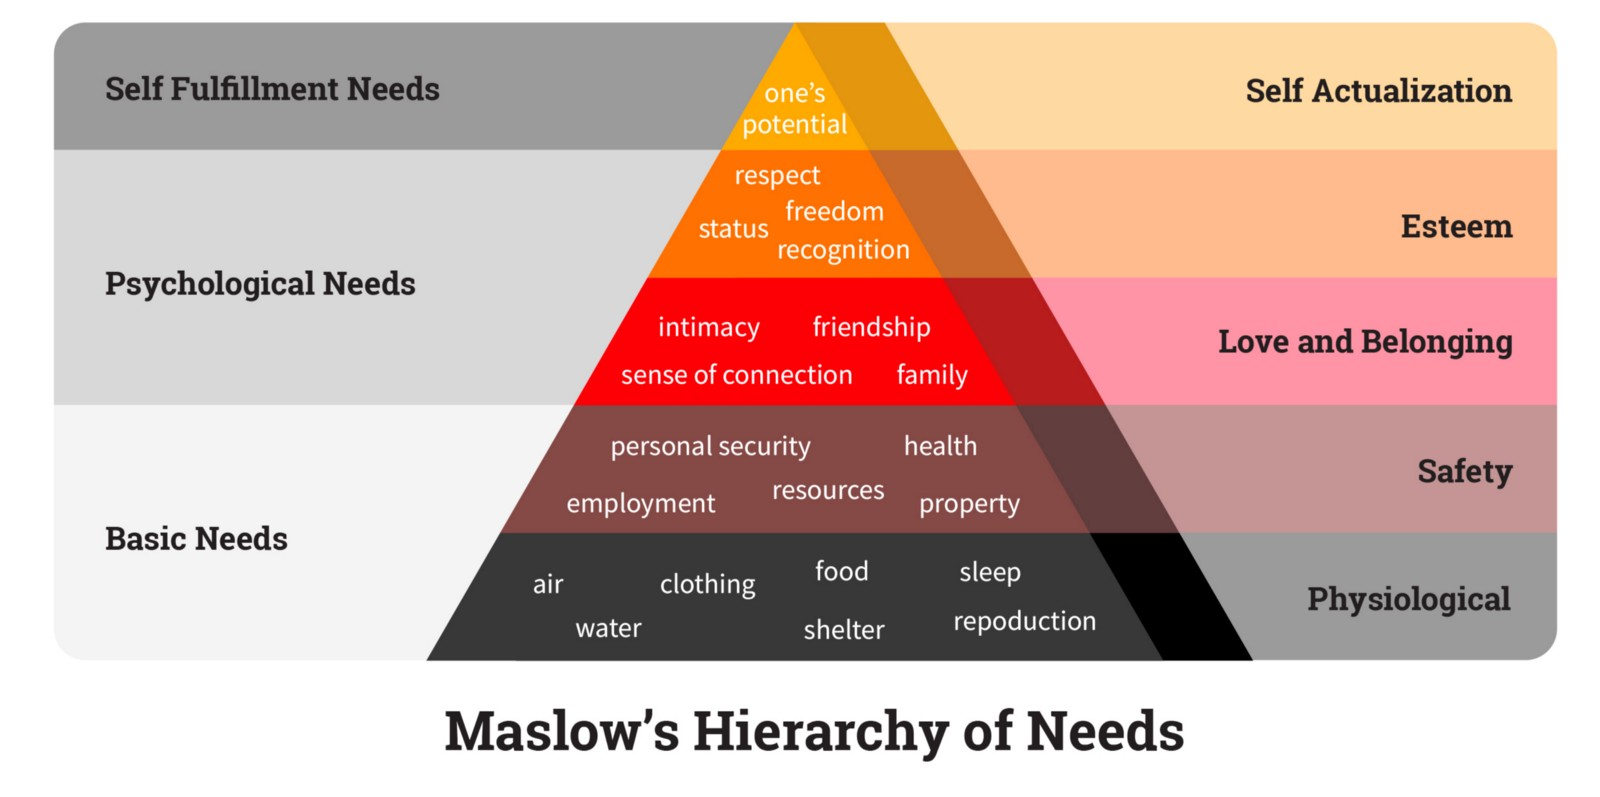 Maslow's Hierarchy of Needs of Human Behavior